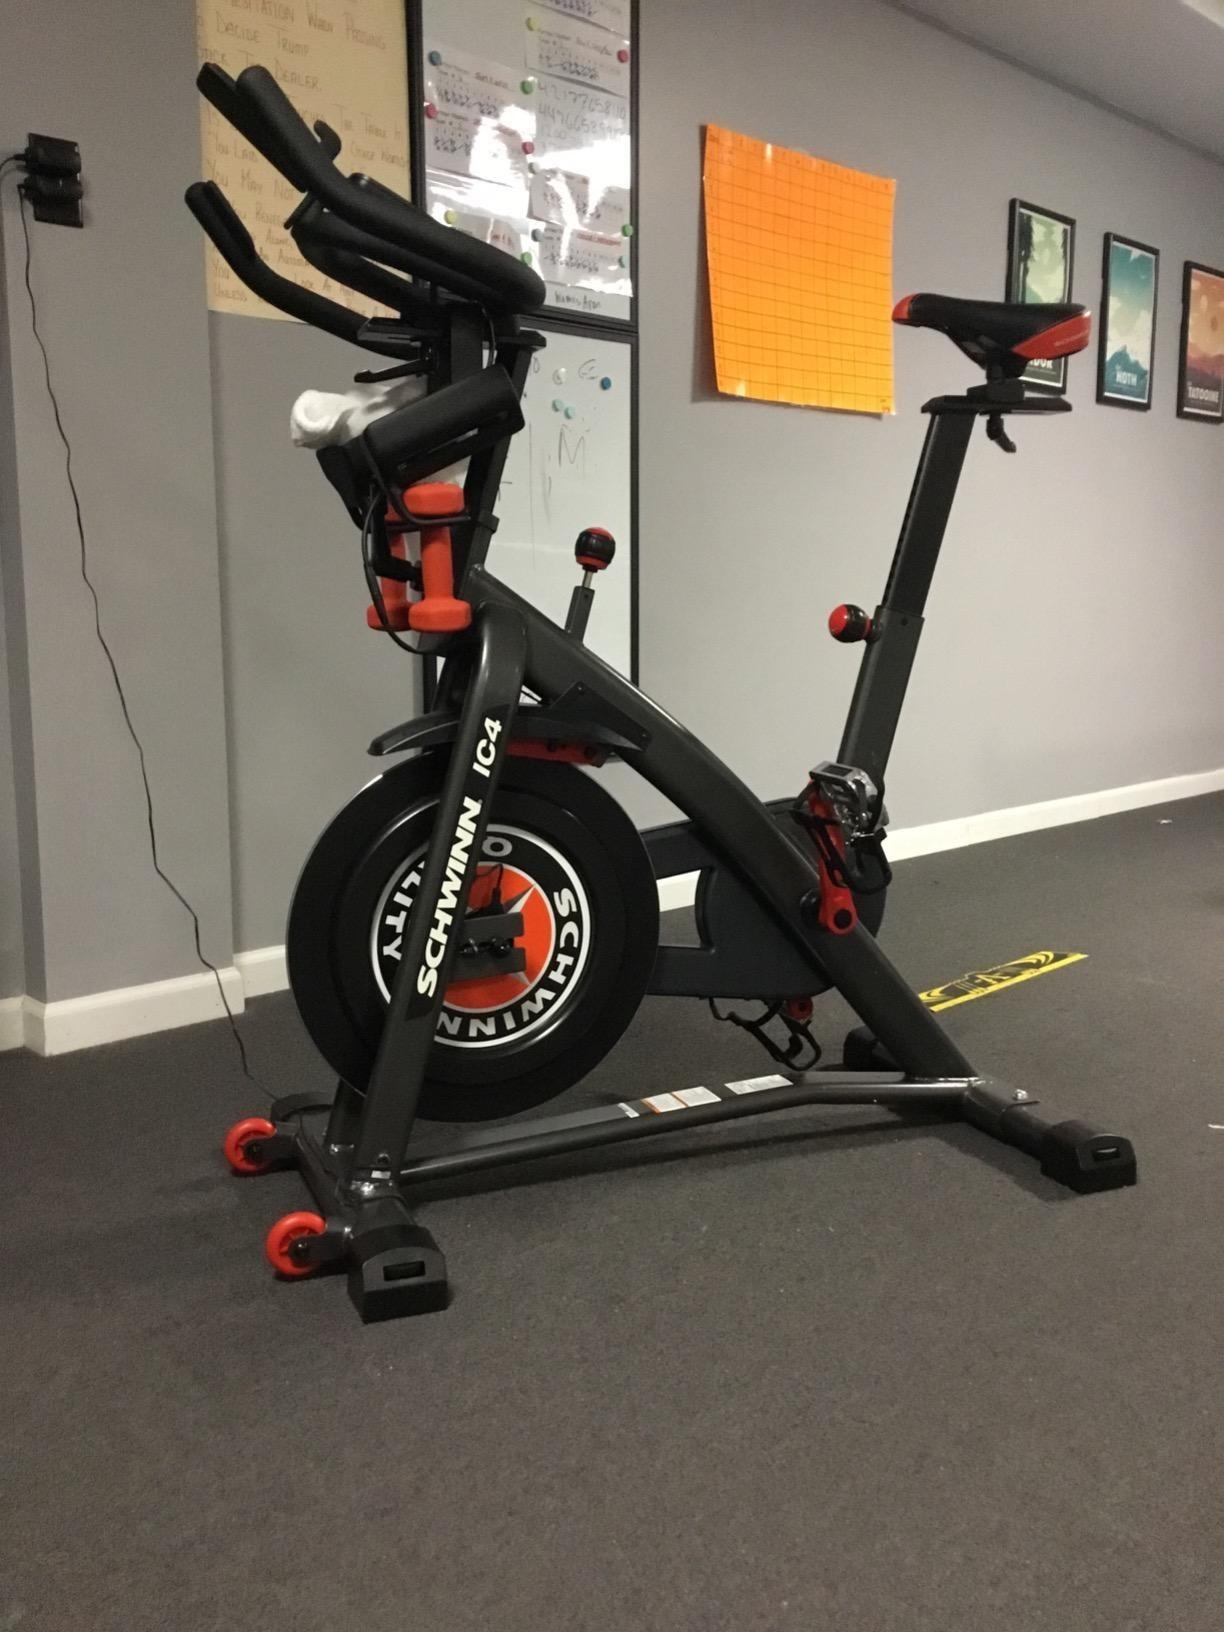 A reviewer's black and red bike with wheels for moving